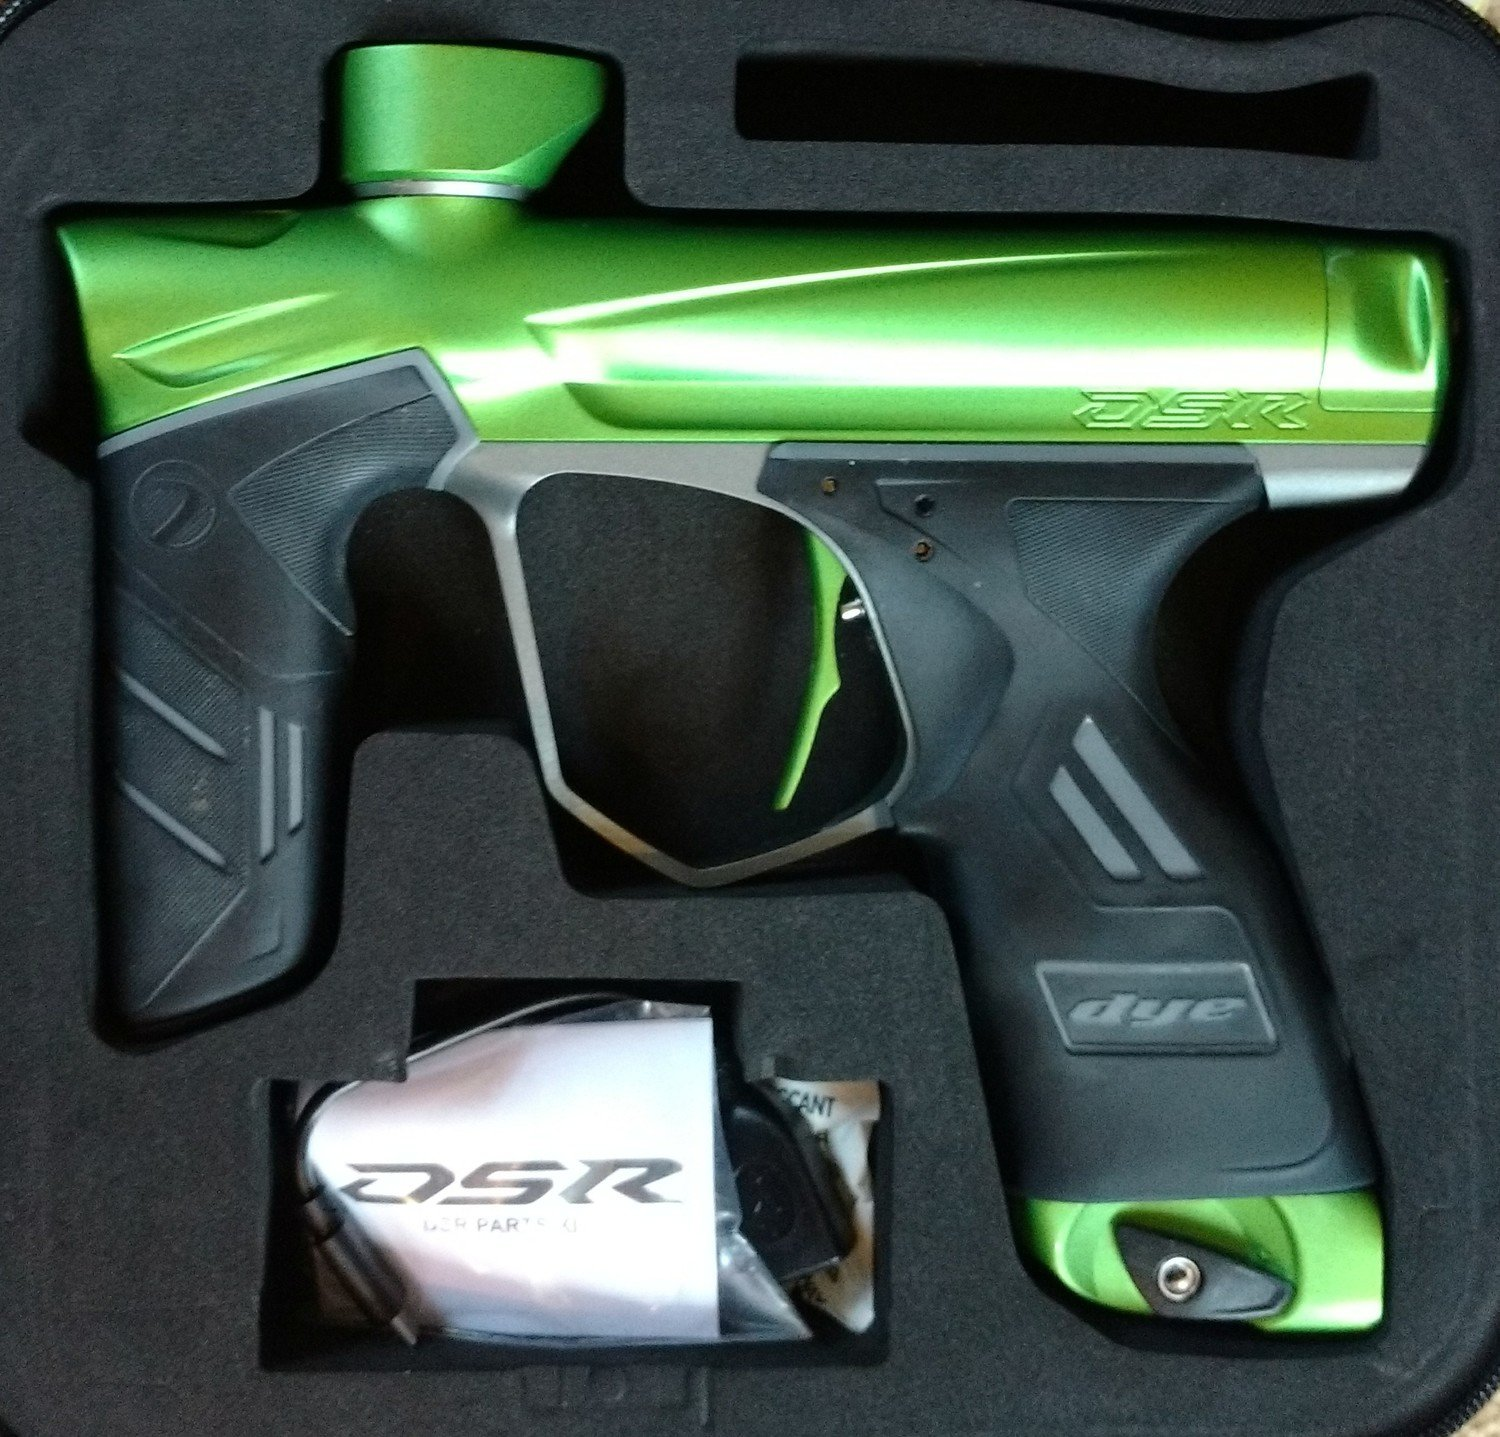 Used DSR Green Machine Marker - Lime/Gray